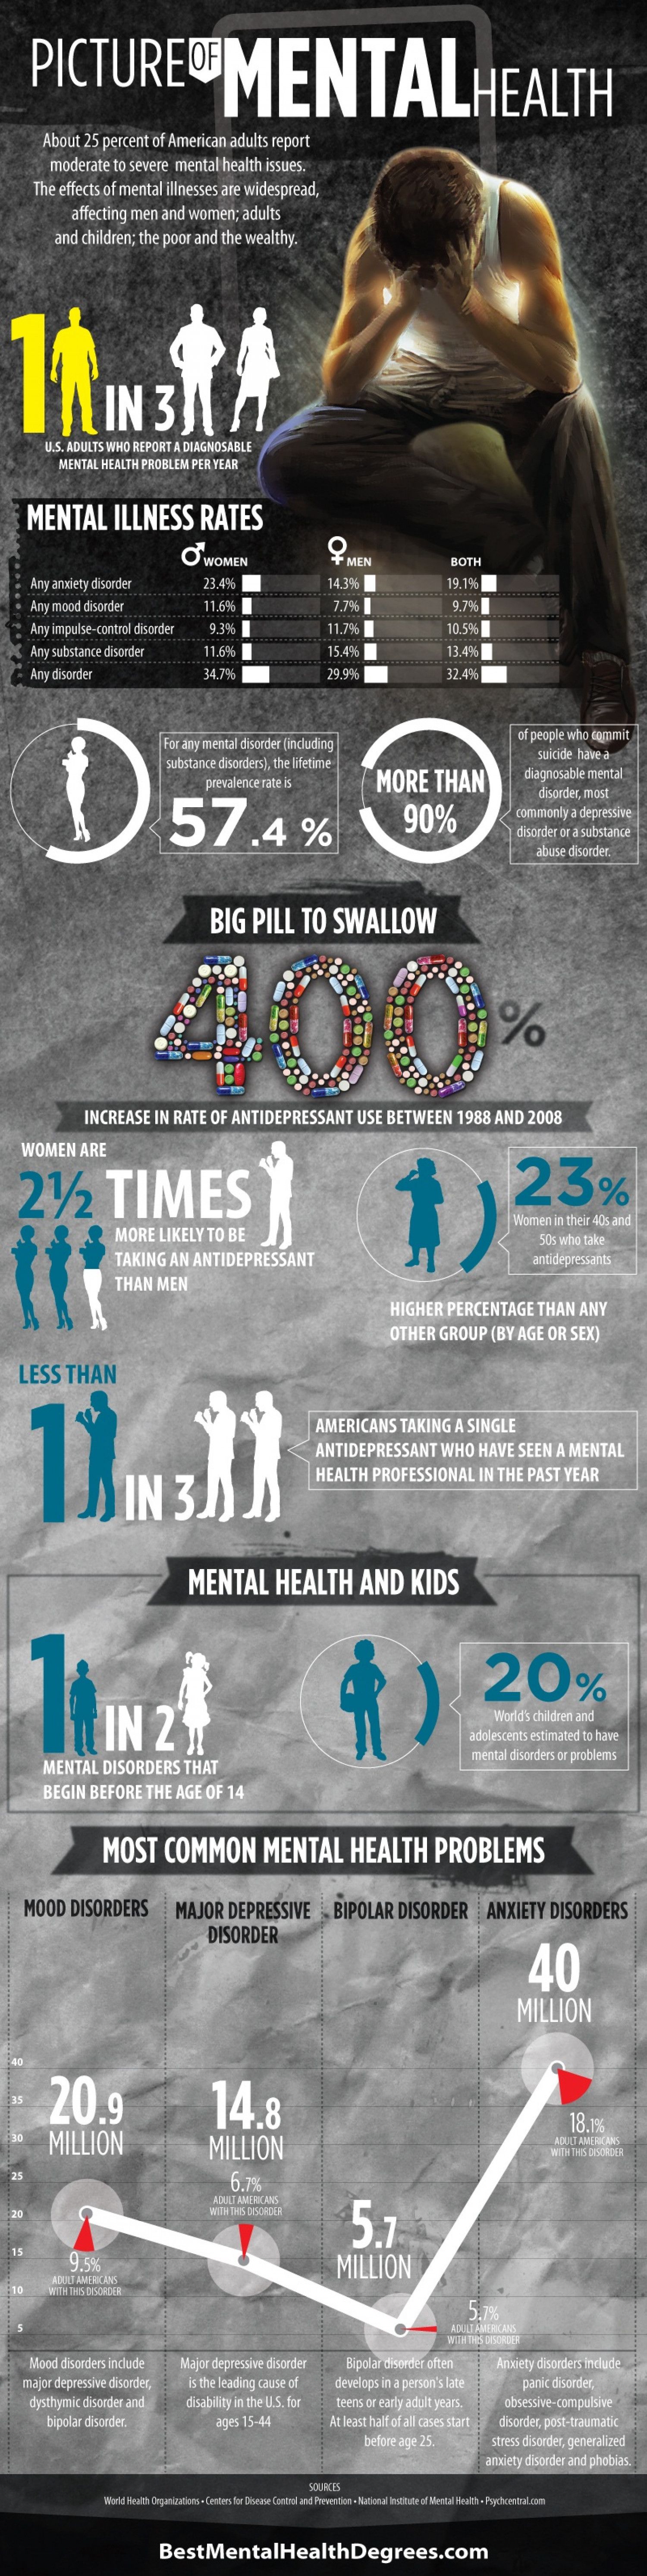 Picture of Mental Health Infographic